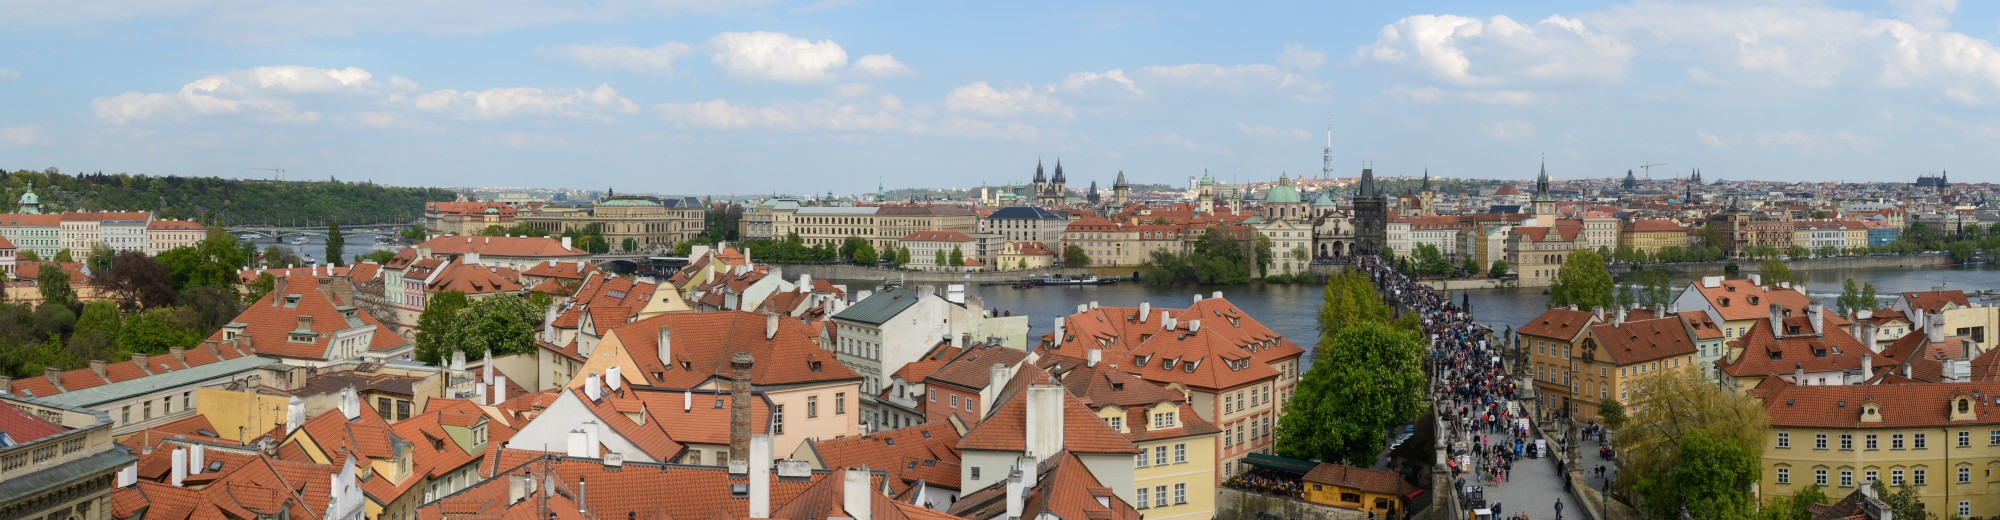 Praha Panorama from Malá Strana Bridge Tower 20170430